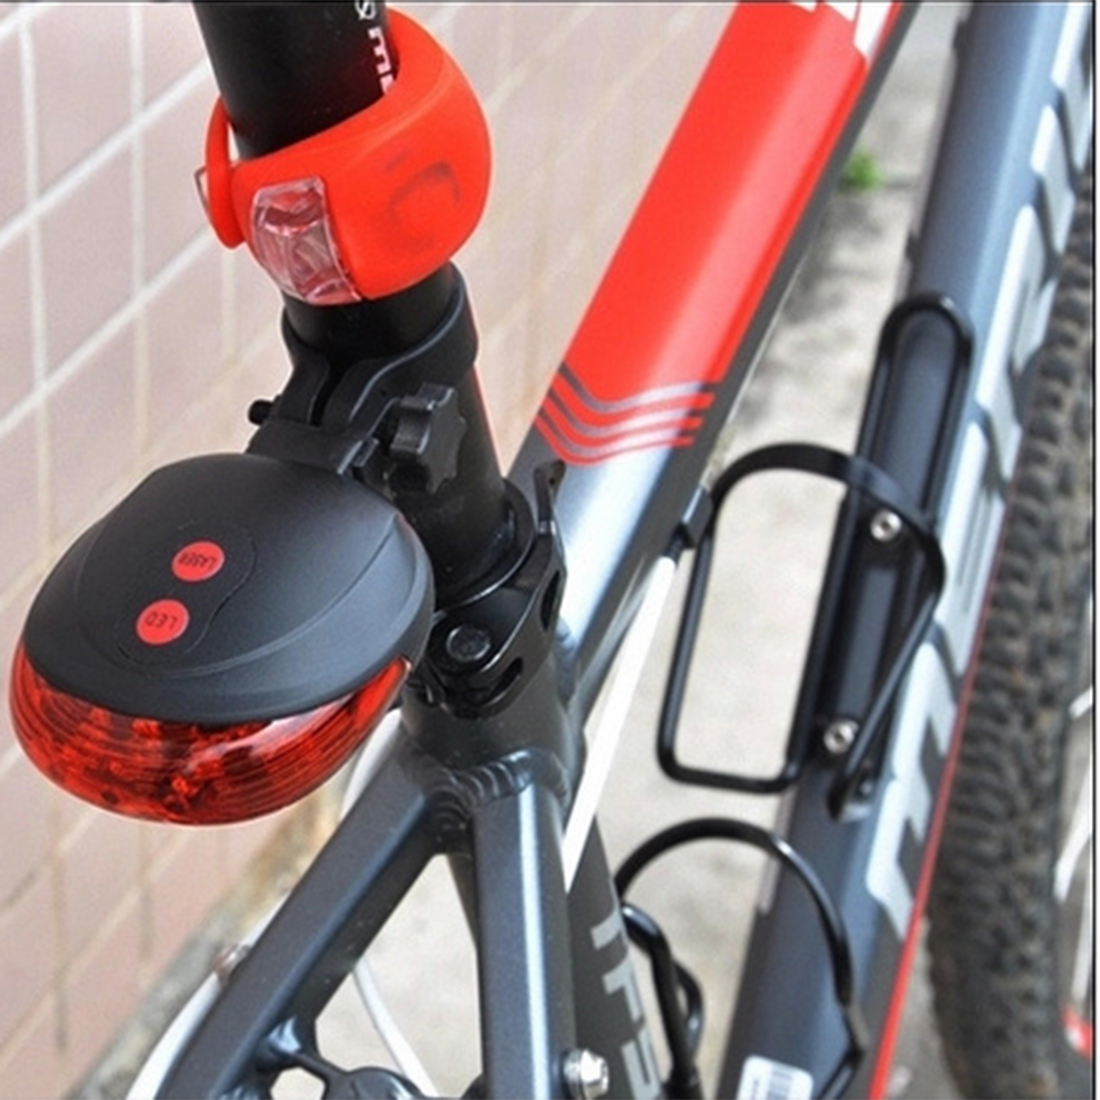 Iguardor Bicycle Light 5 LEDs Laser Tail Light Bike Rear Safety Warning Parallel Intersection Line Light Cycling Accessories